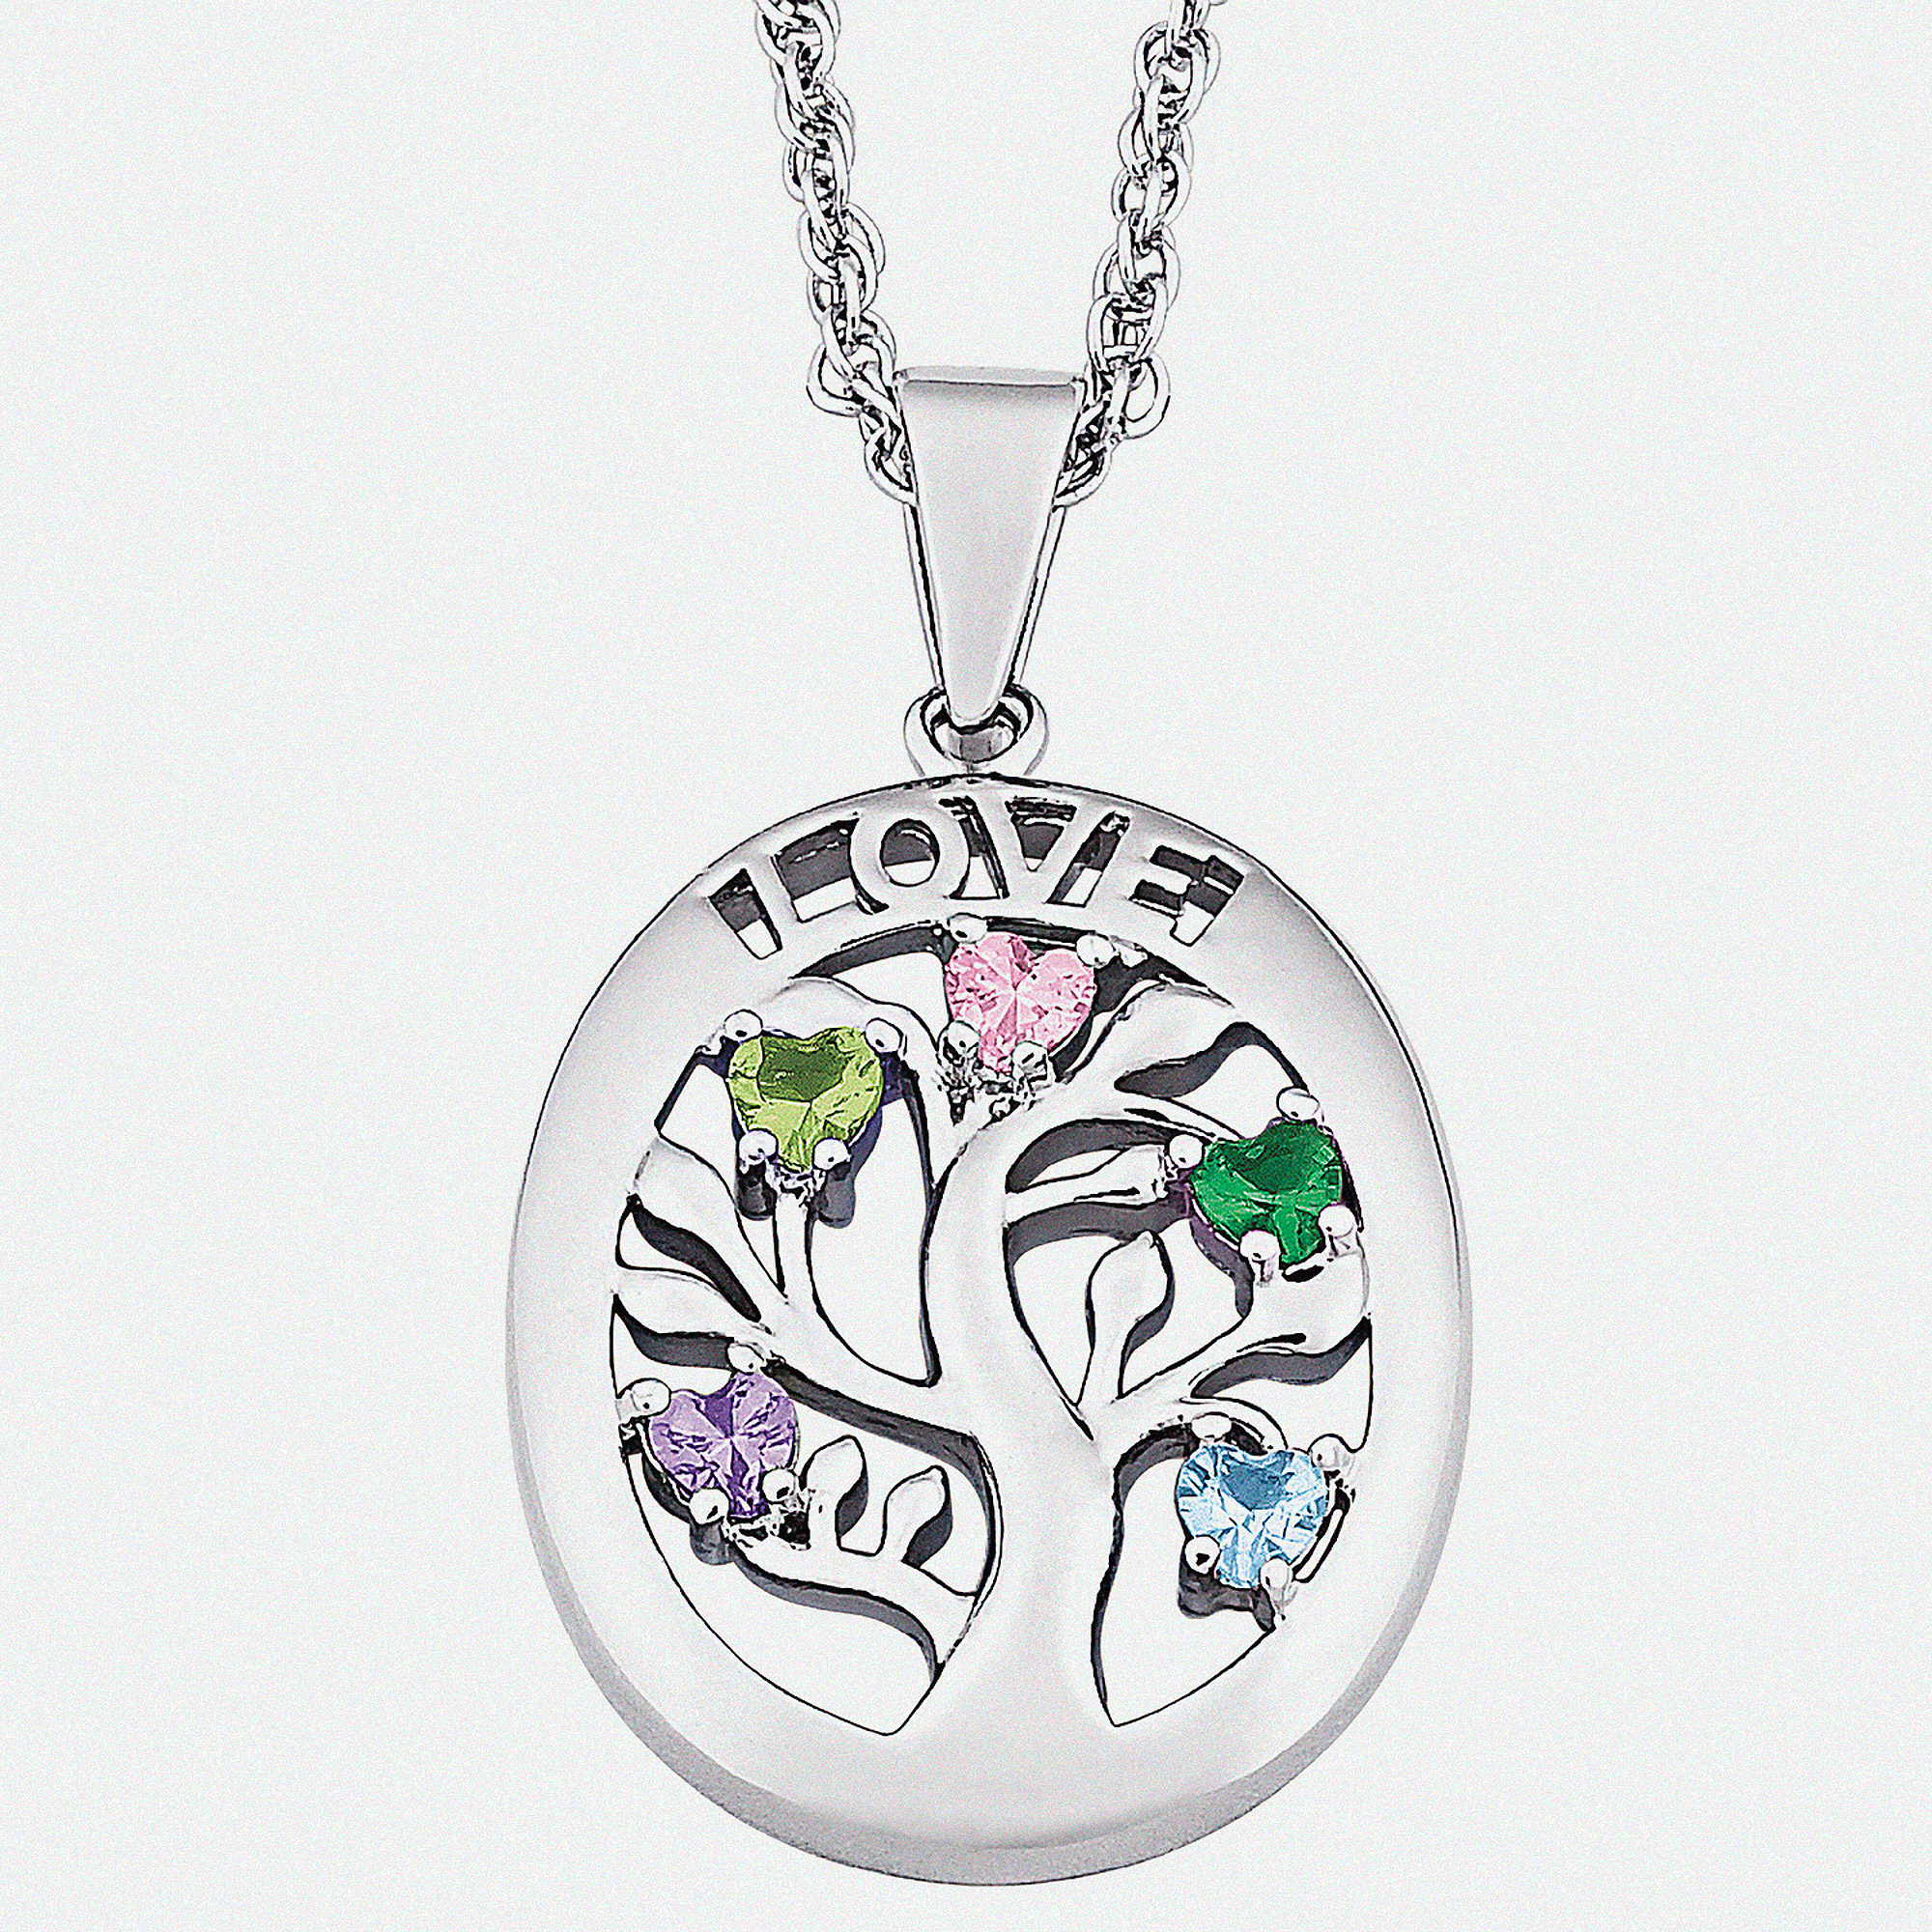 Personalized Family Tree Birthstone Love Necklace